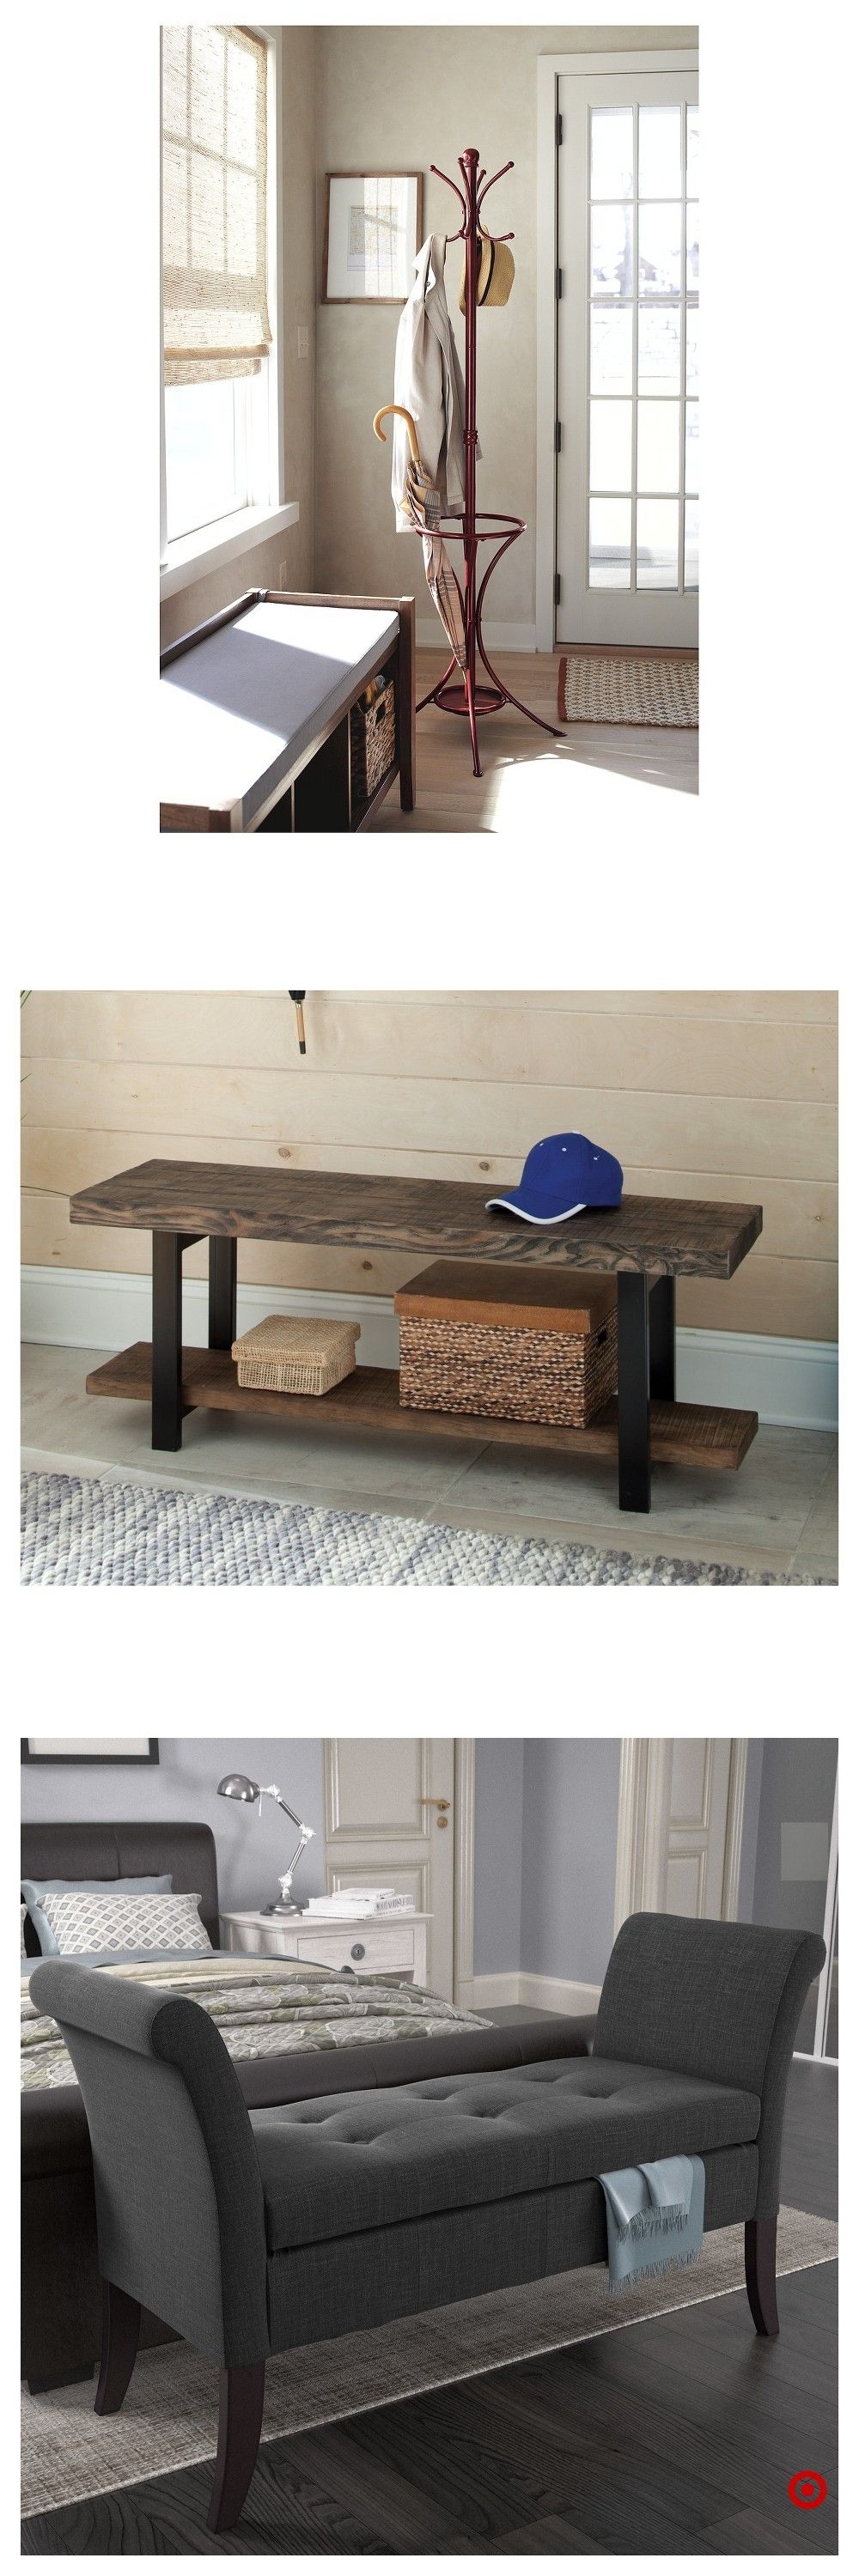 Shop Target For Folding Benches You Will Love At Great Low